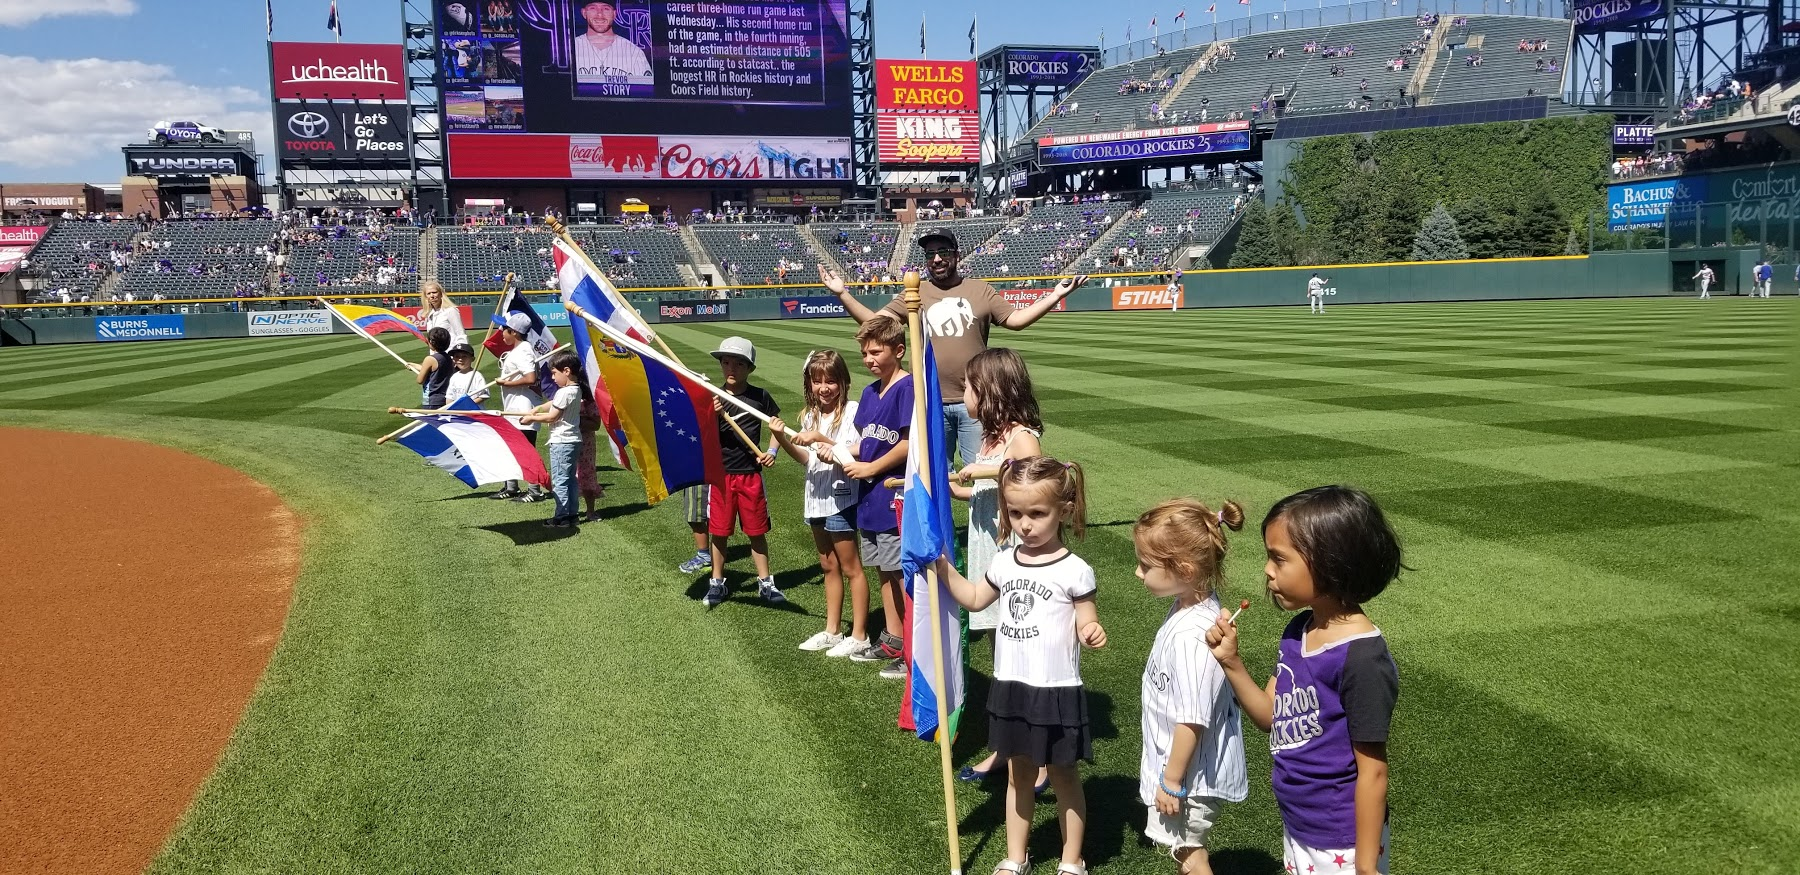 On field Latin Country Flag Presentation with students from the International School of Denver